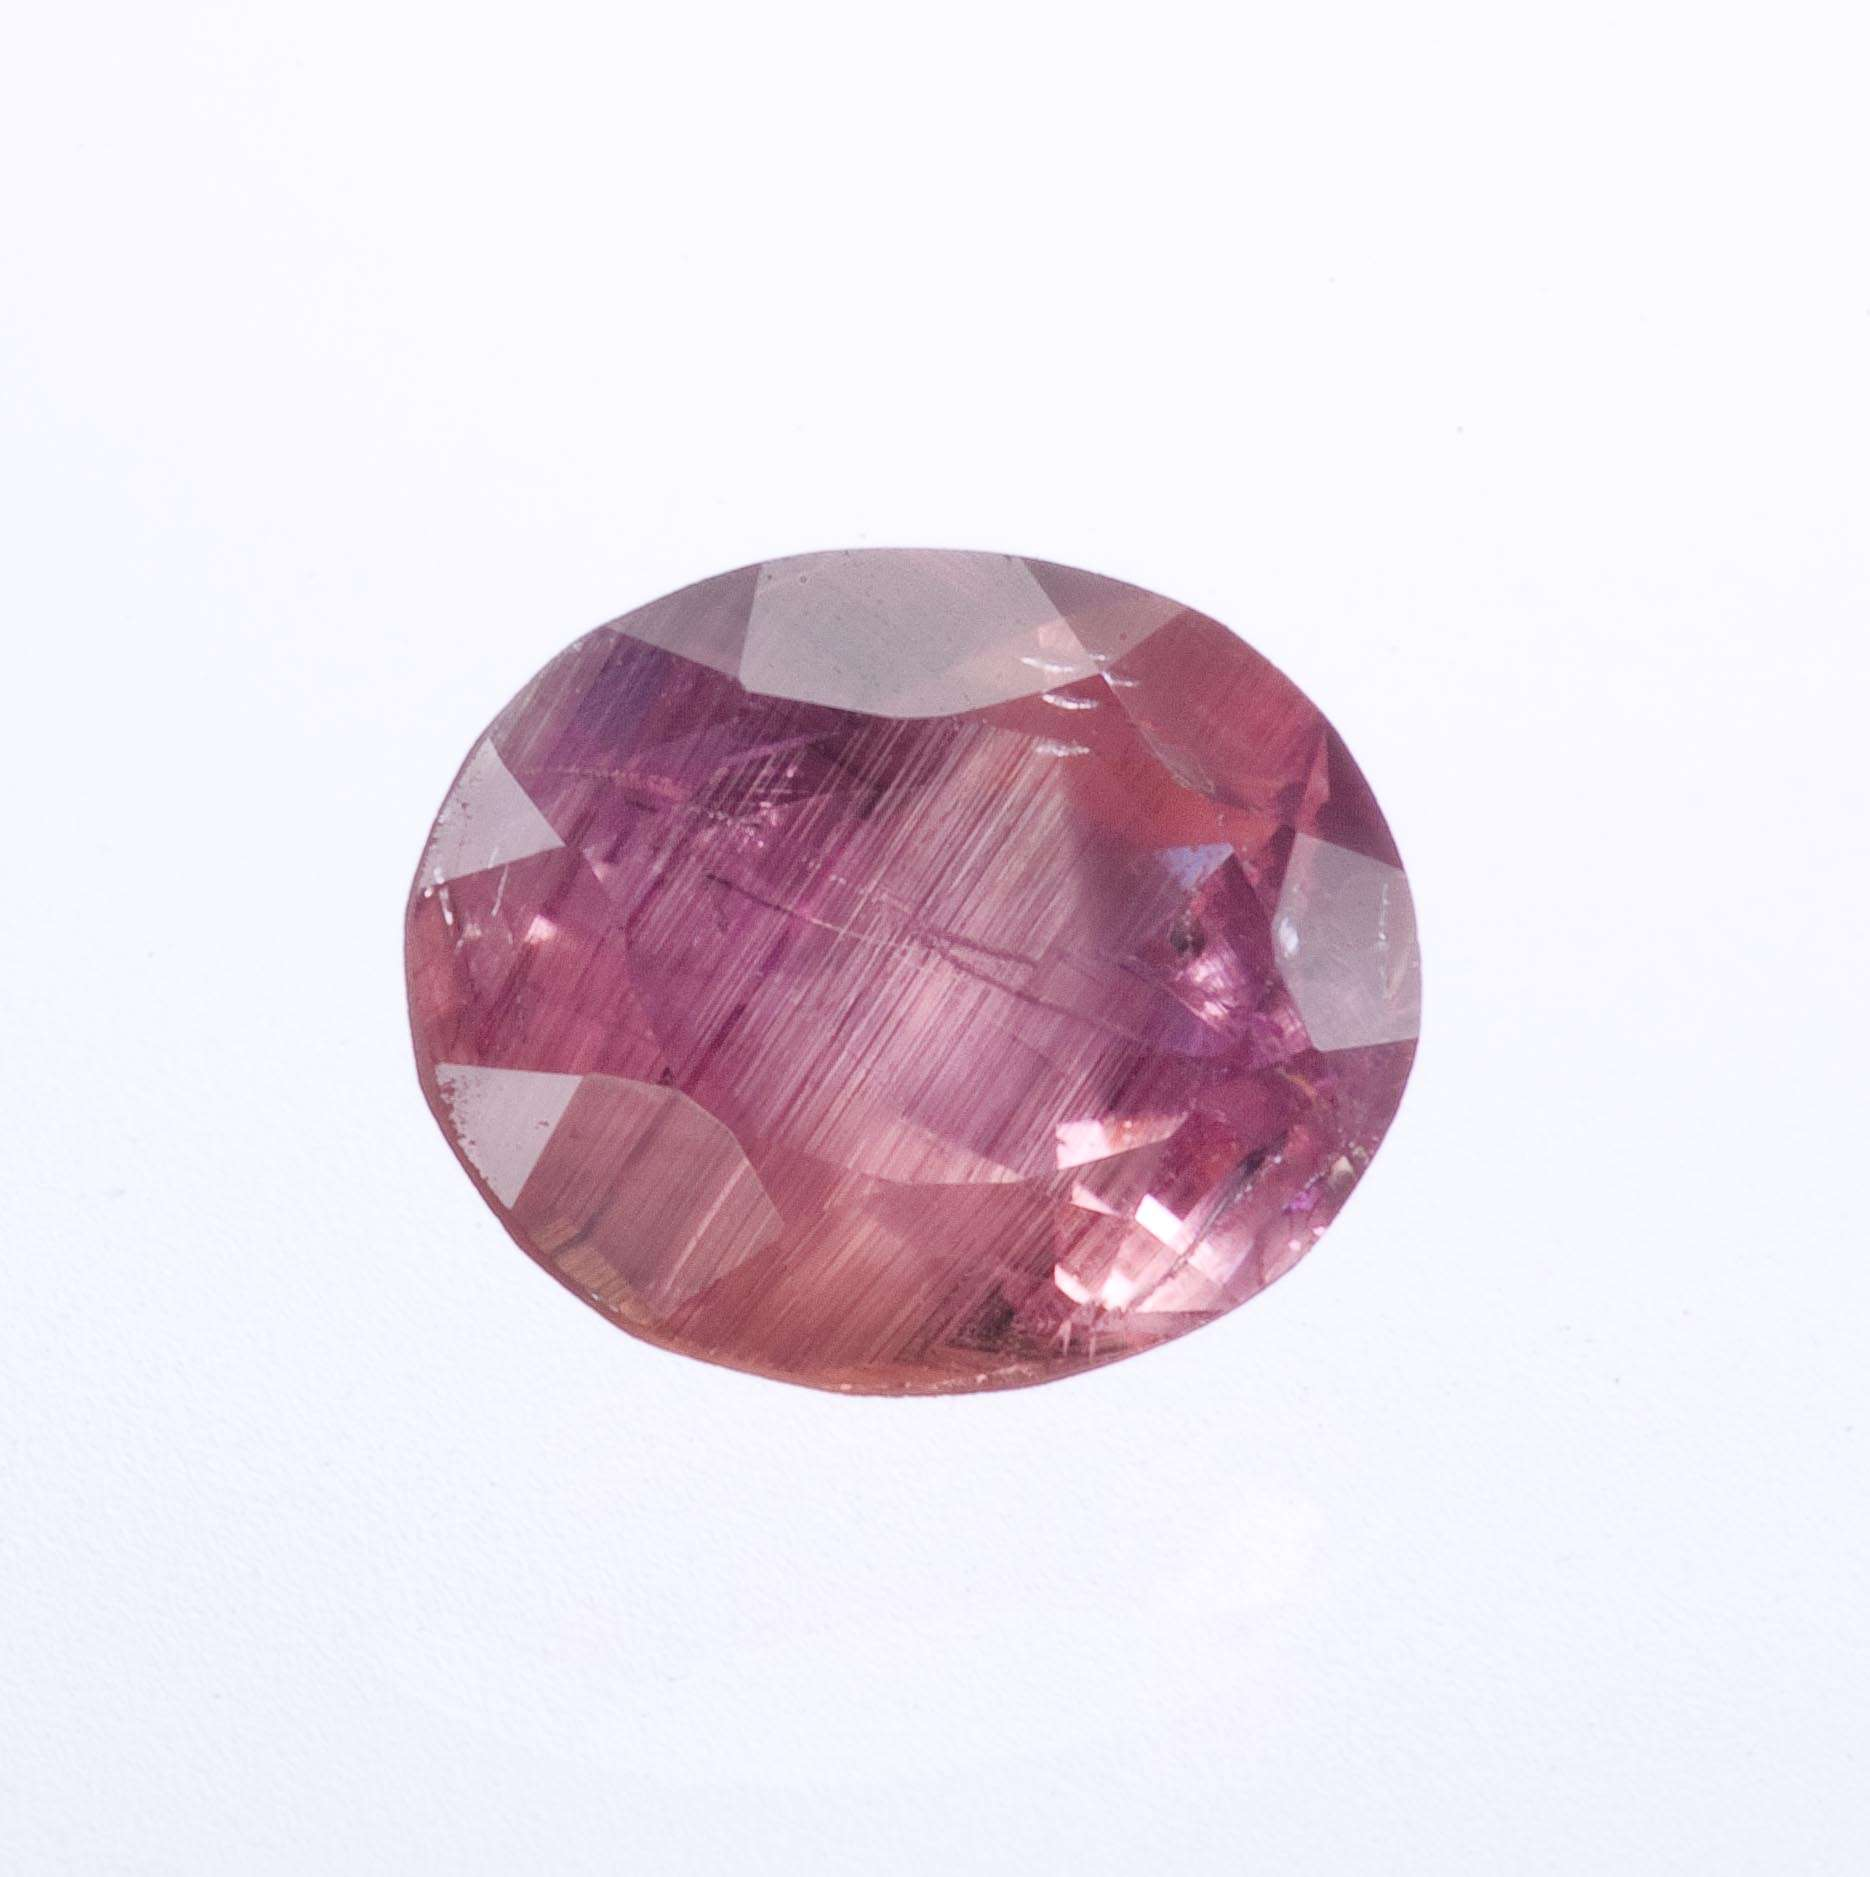 This larger gem somewhat rounded rectangle cut The stone reasonably